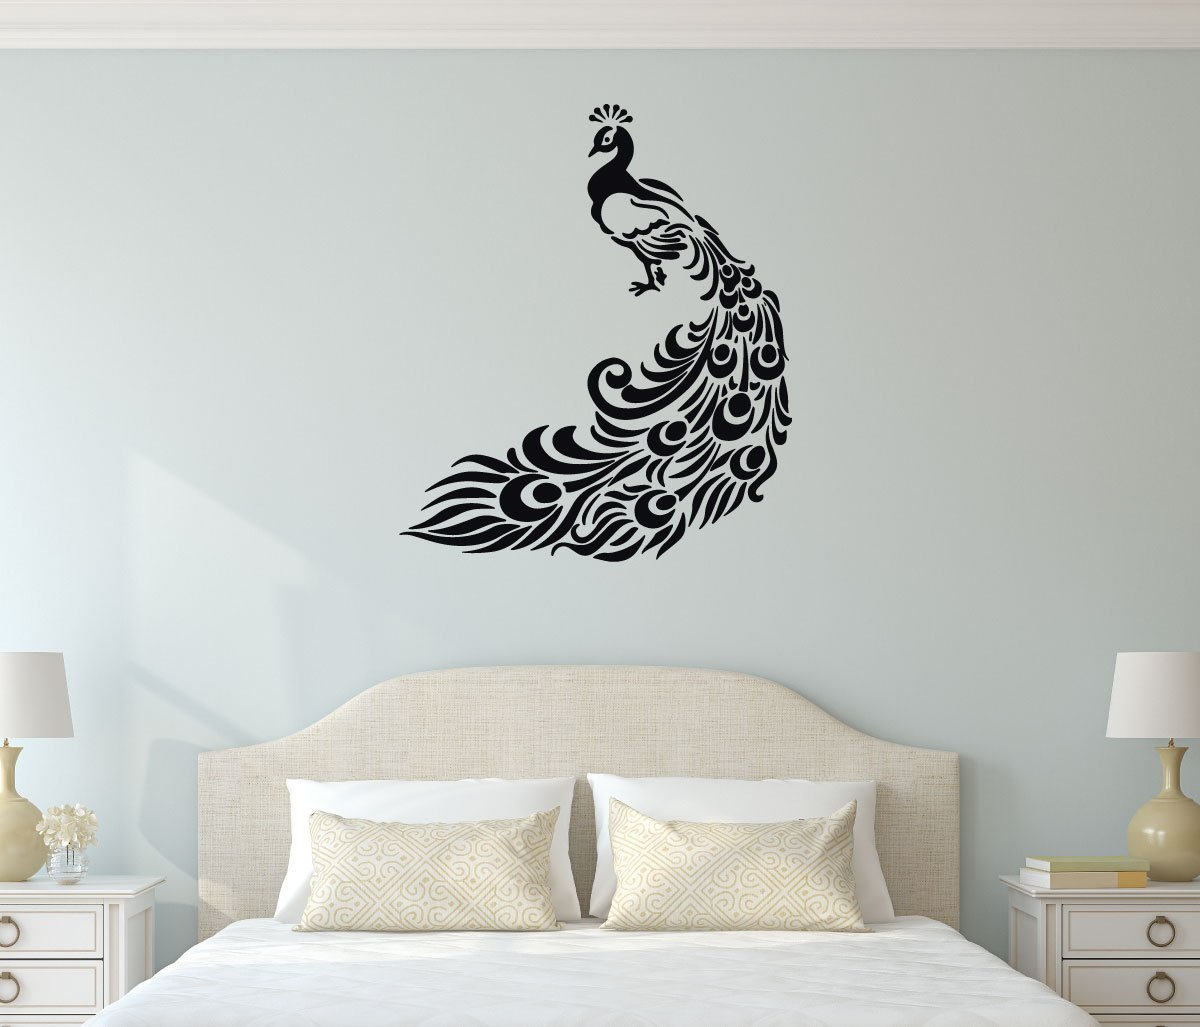 Bon Peacock Wall Decal Vinyl Decor For Home And More